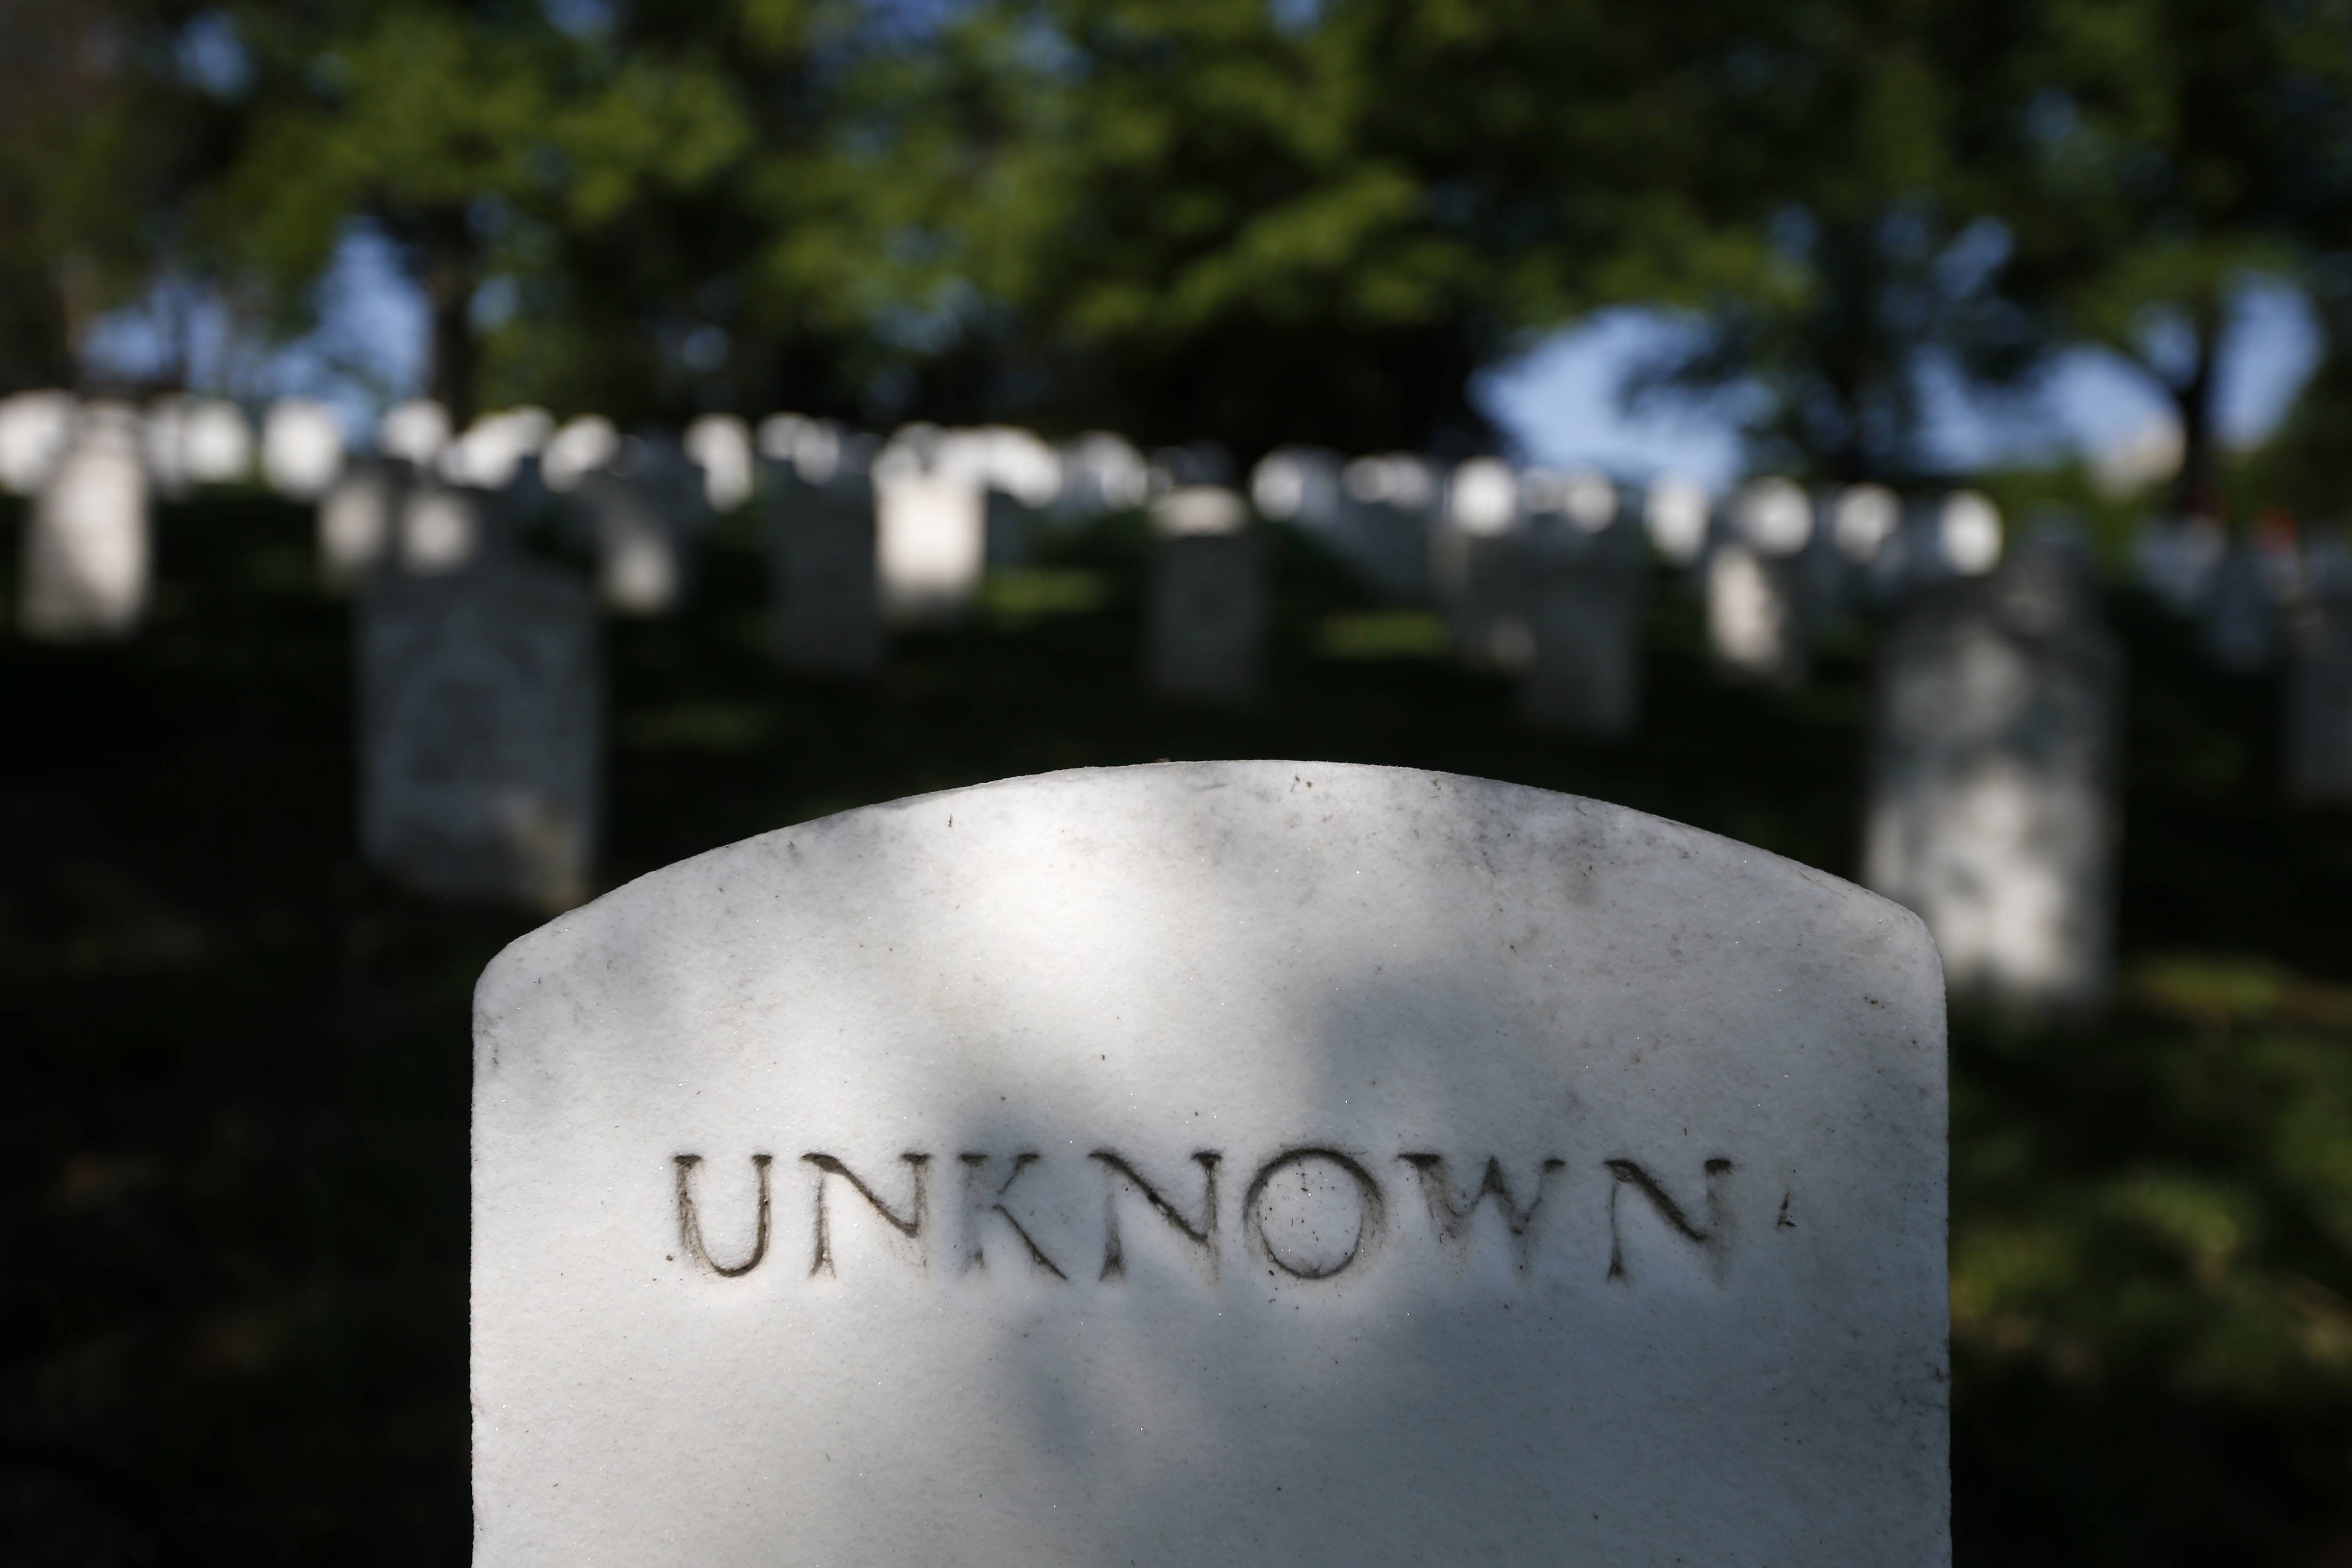 Visitors often stop by this grave marker for an unknown soldier at Arlington National Cemetery in Arlington, Va.